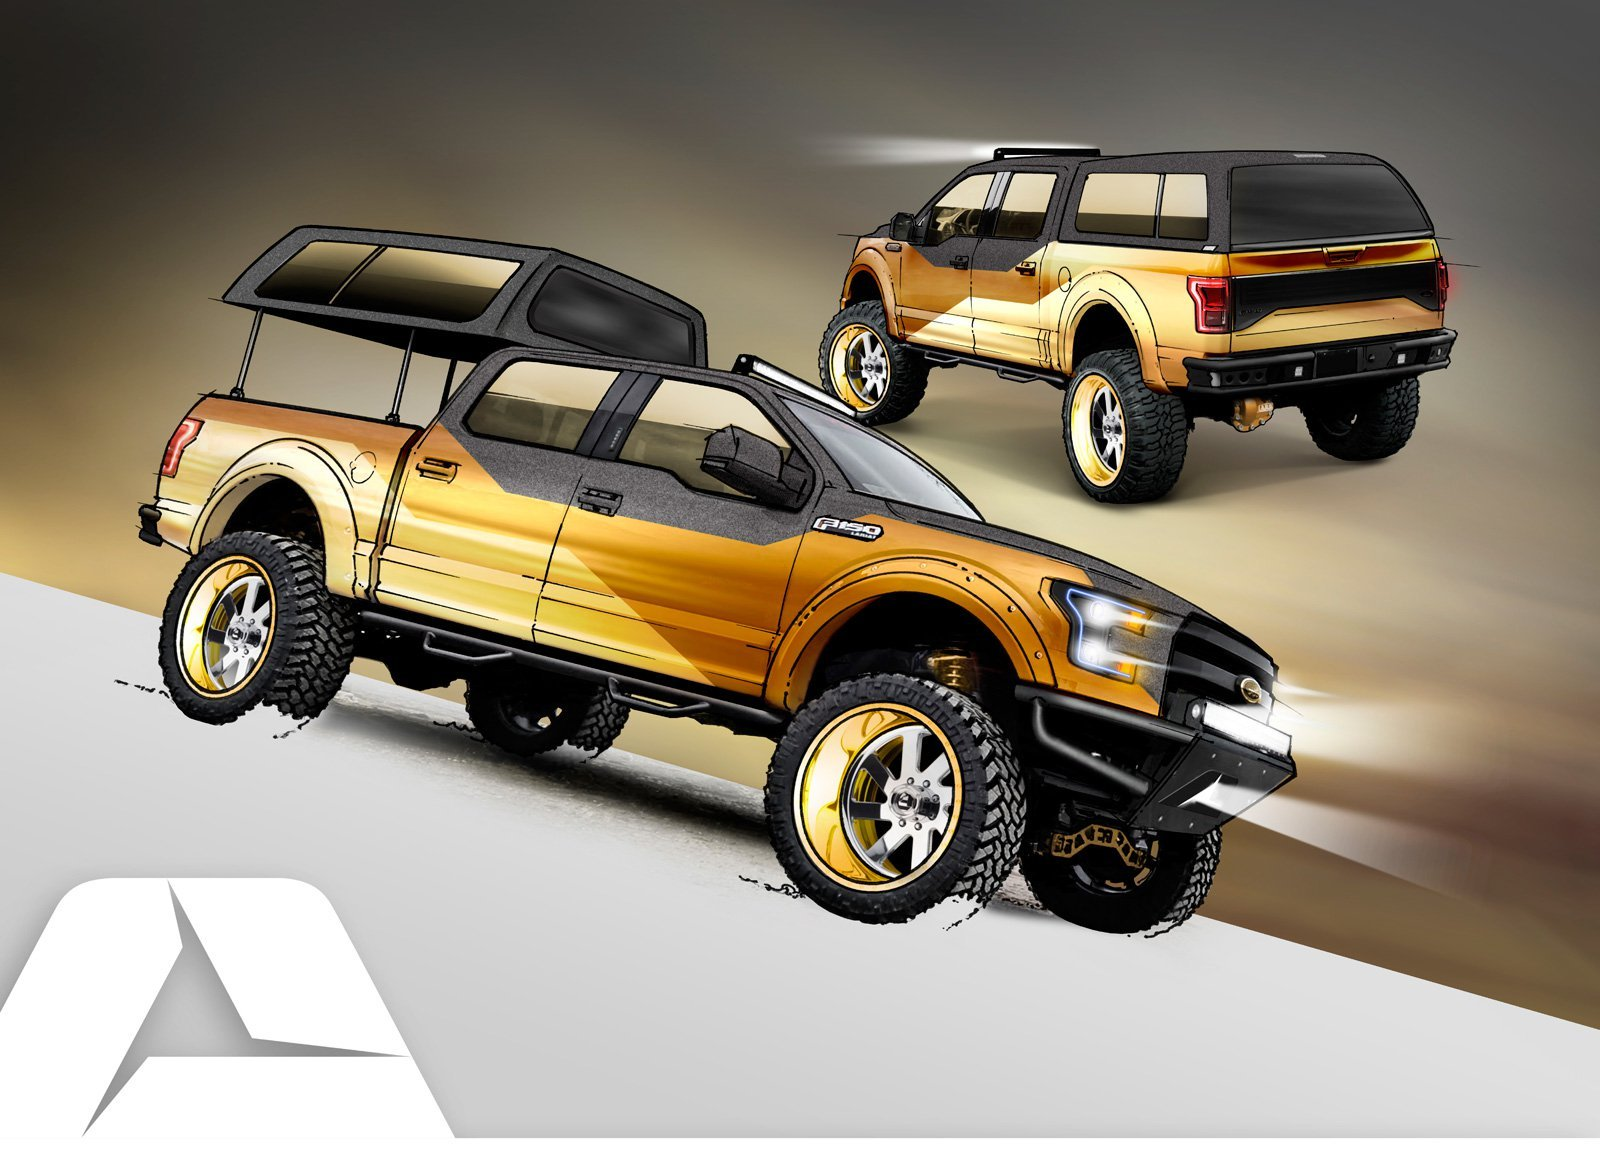 Custom Ford F-150 Pickup Trucks Previewed for SEMA